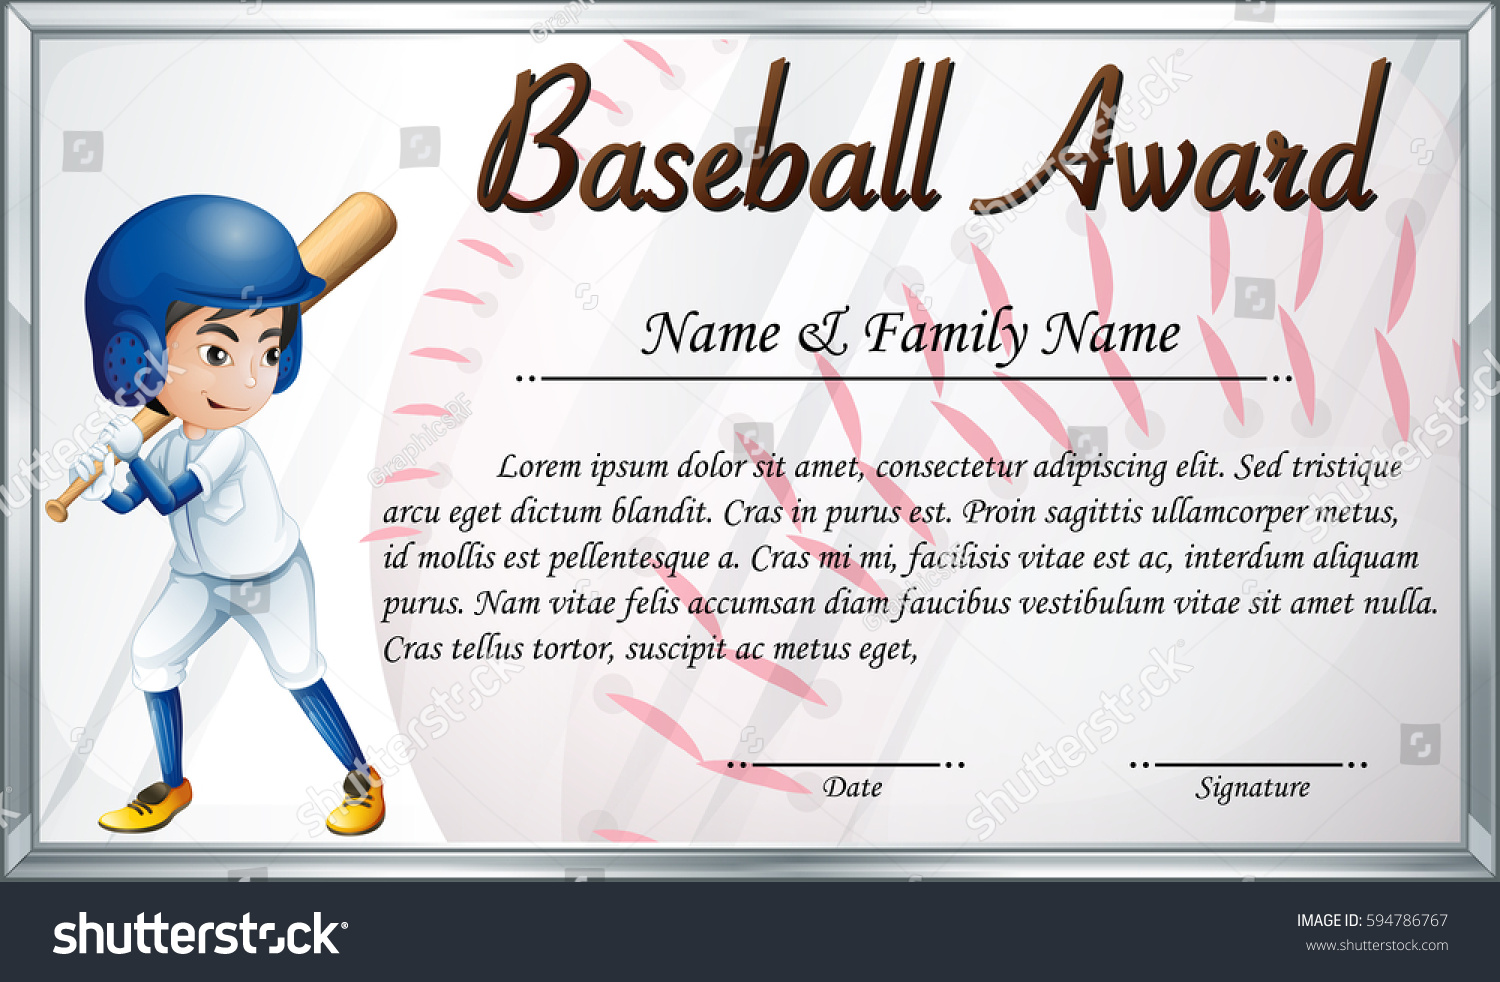 Certificate template baseball award baseball player stock vector certificate template baseball award baseball player stock vector 594786767 shutterstock yadclub Image collections